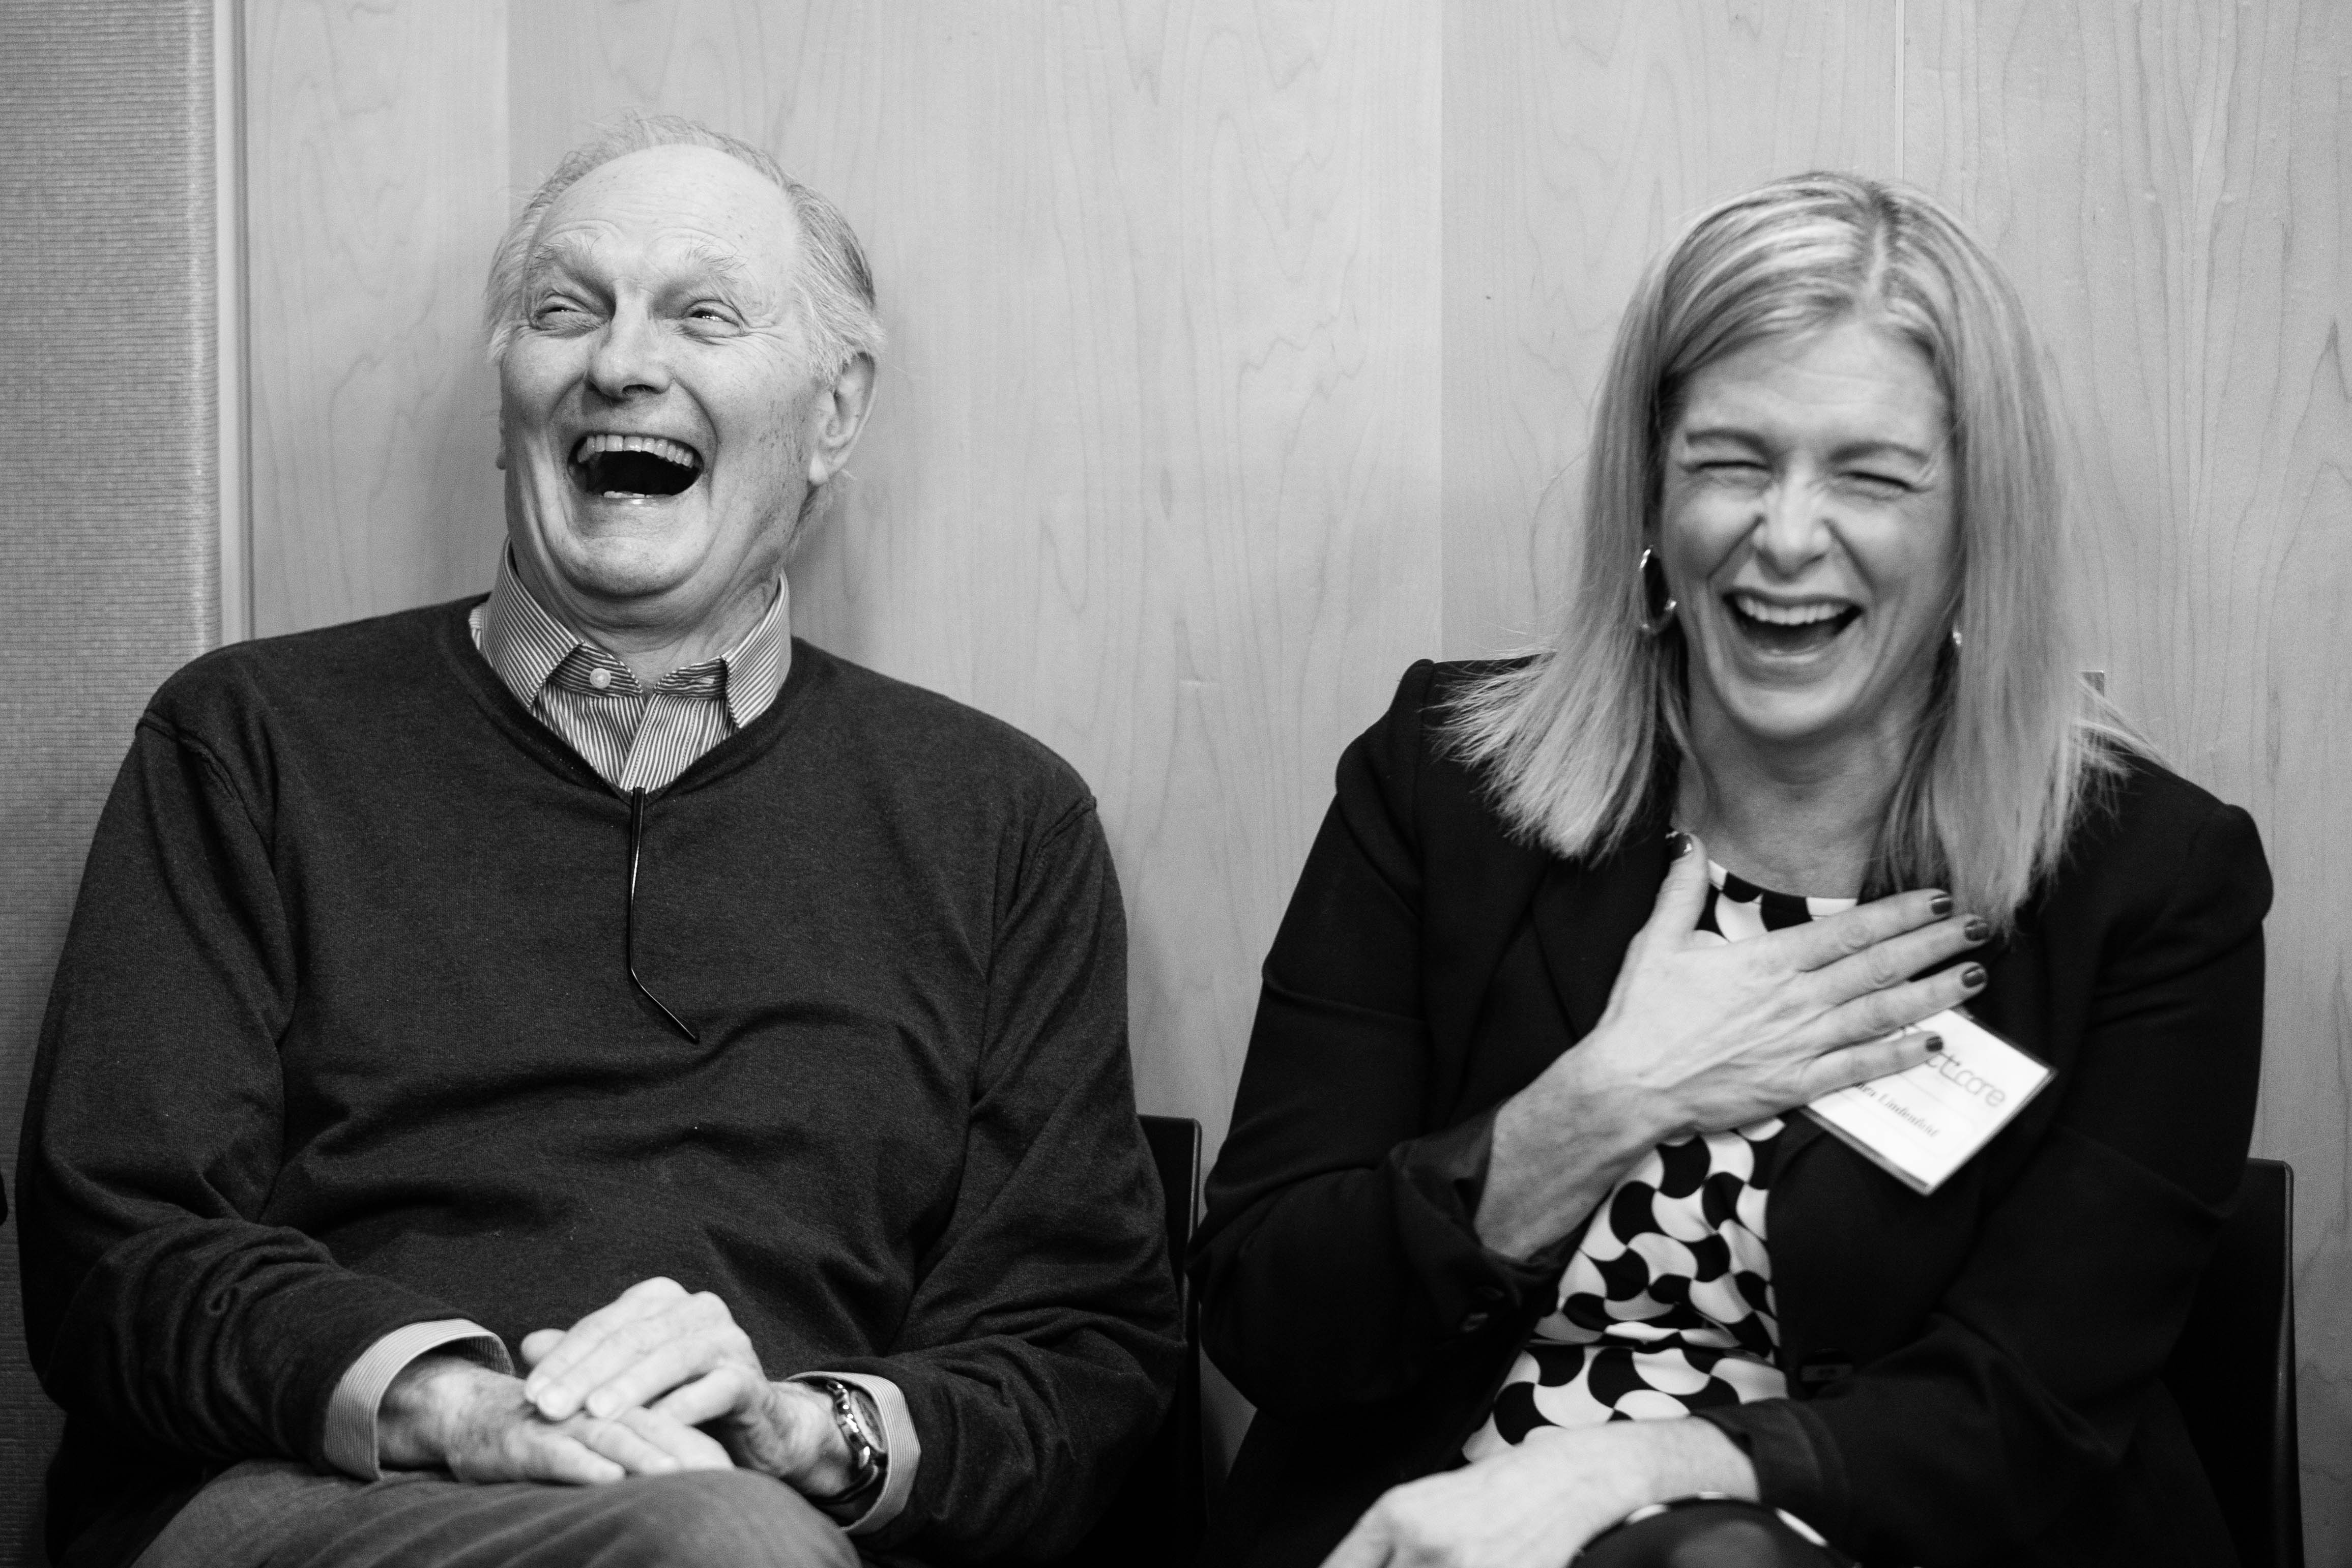 Laura Lindenfeld and Alan Alda laughing.